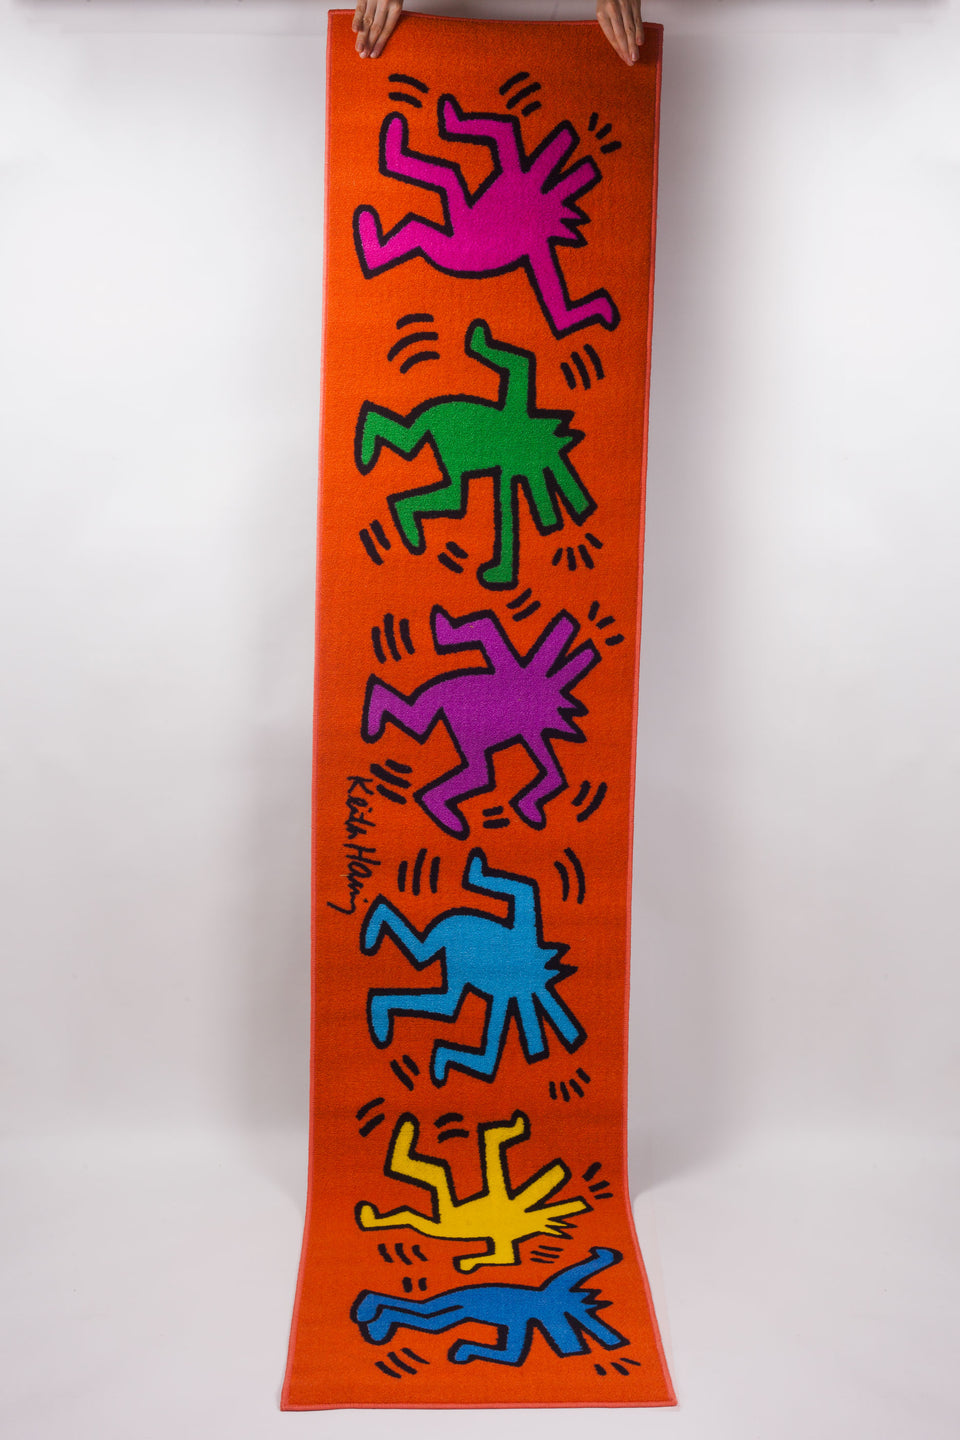 Brilliant colors in this Keith Haring runner with dancing figures, distributed by Comart Italia.